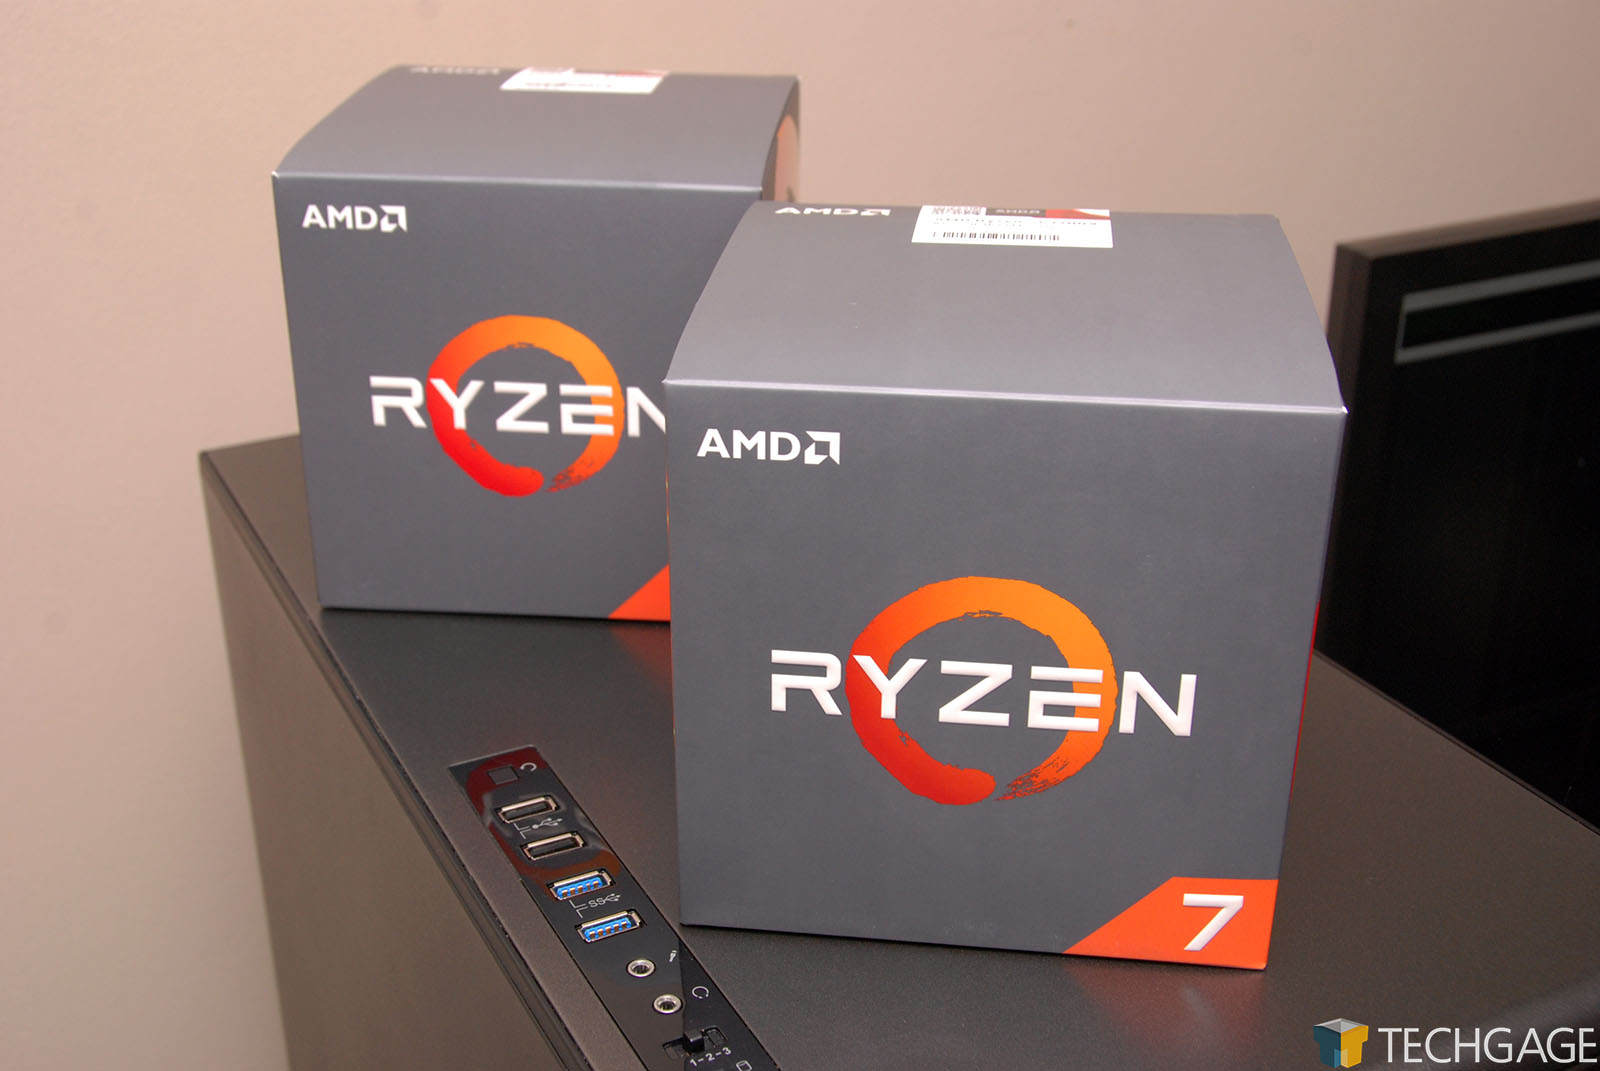 f7ef71a31ff ... AMD s 2nd-gen Ryzen  Pinnacle Ridge  CPUs have landed. These new  Zen+   chips are built on a 12nm process